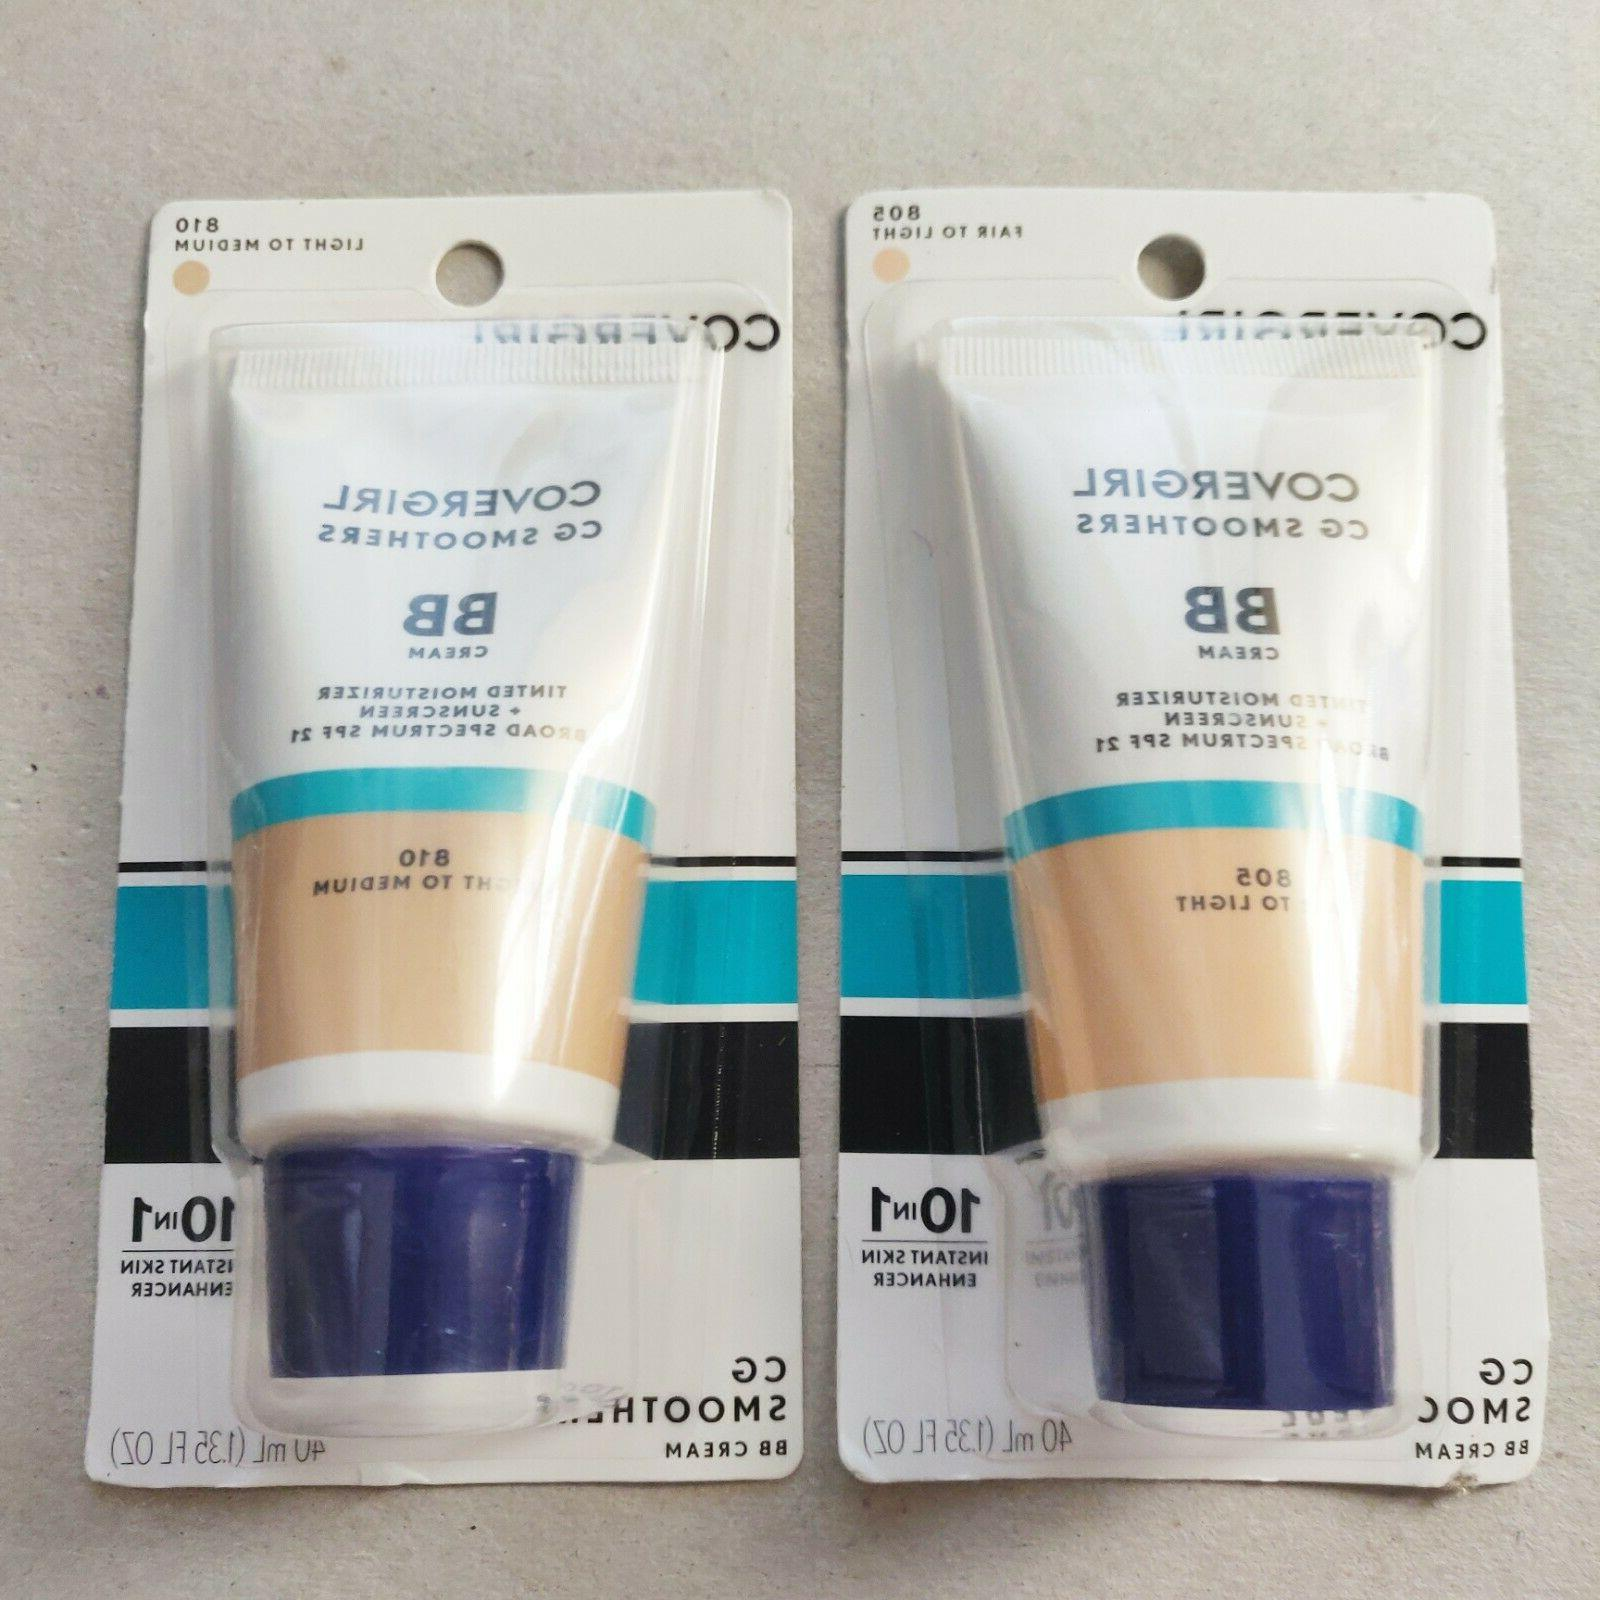 cg smoothers bb cream 805 or 810